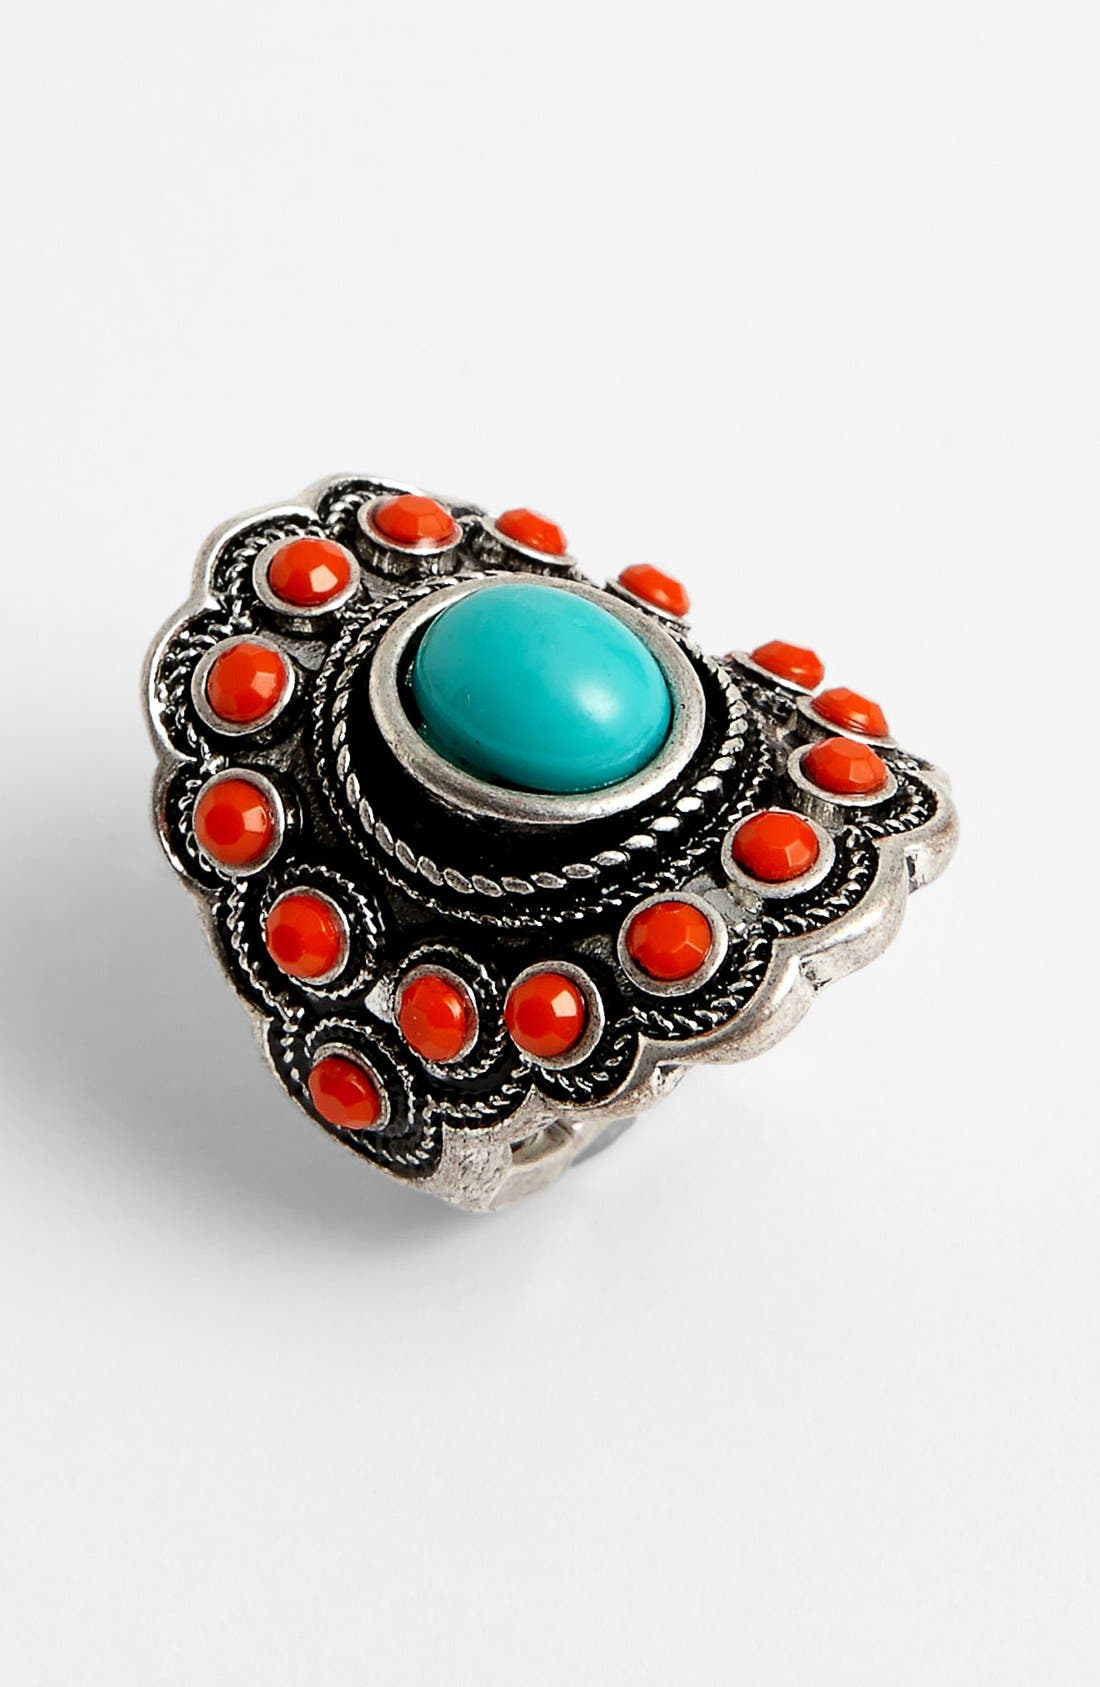 Alternate Image 1 Selected - BP. Turquoise & Coral Vintage Ring